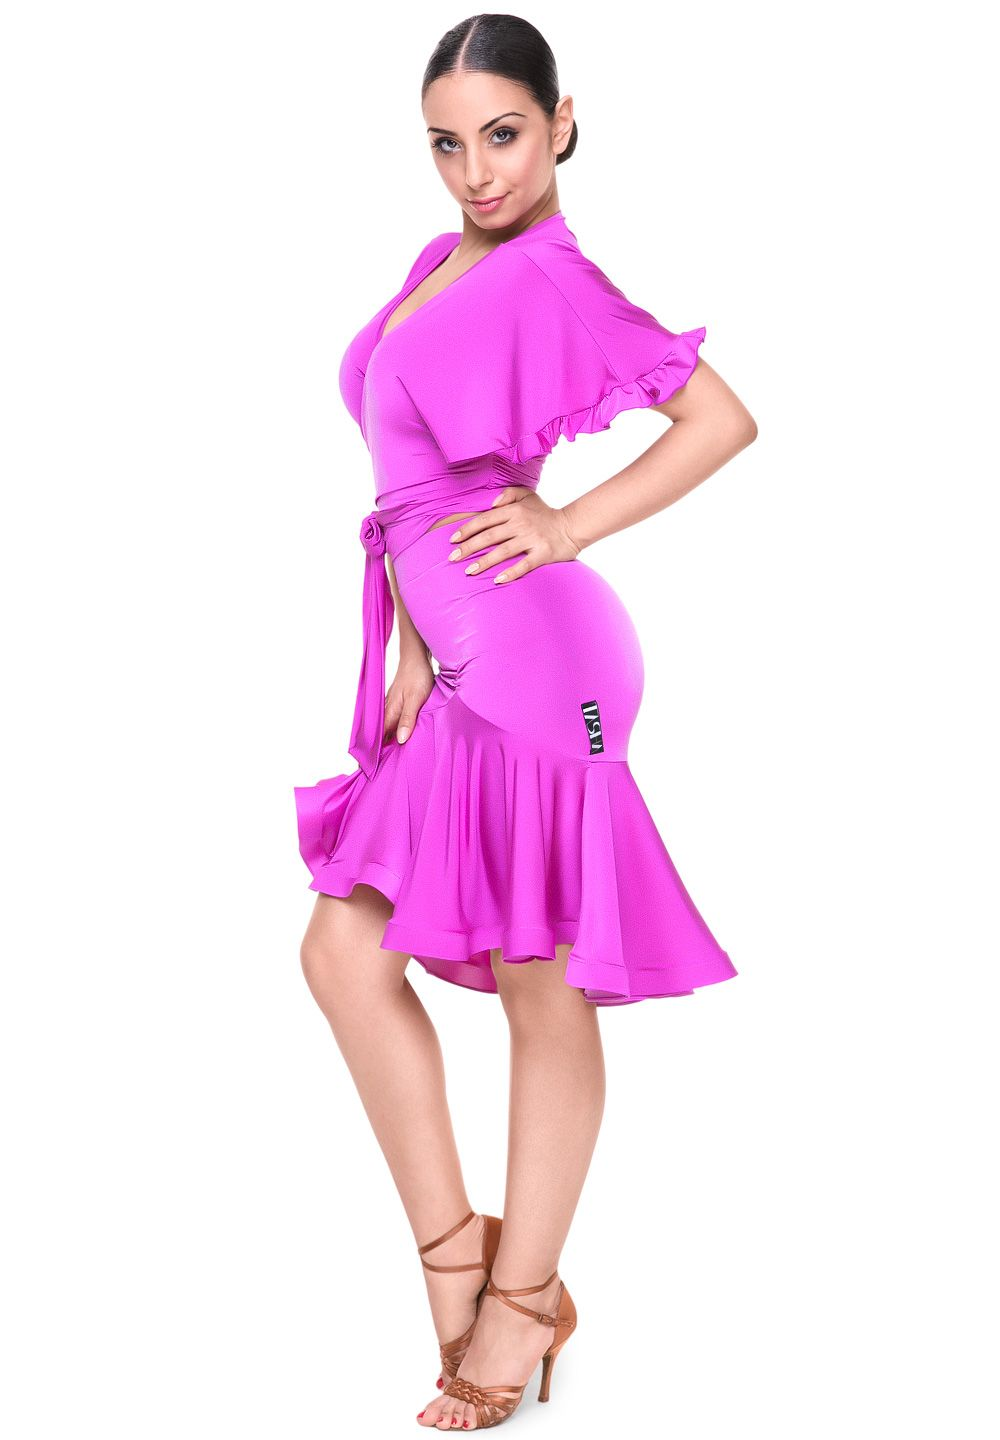 Tasha by Popcon Fit and Flare Latin Skirt TWLS003|Skirts | Vestidos ...